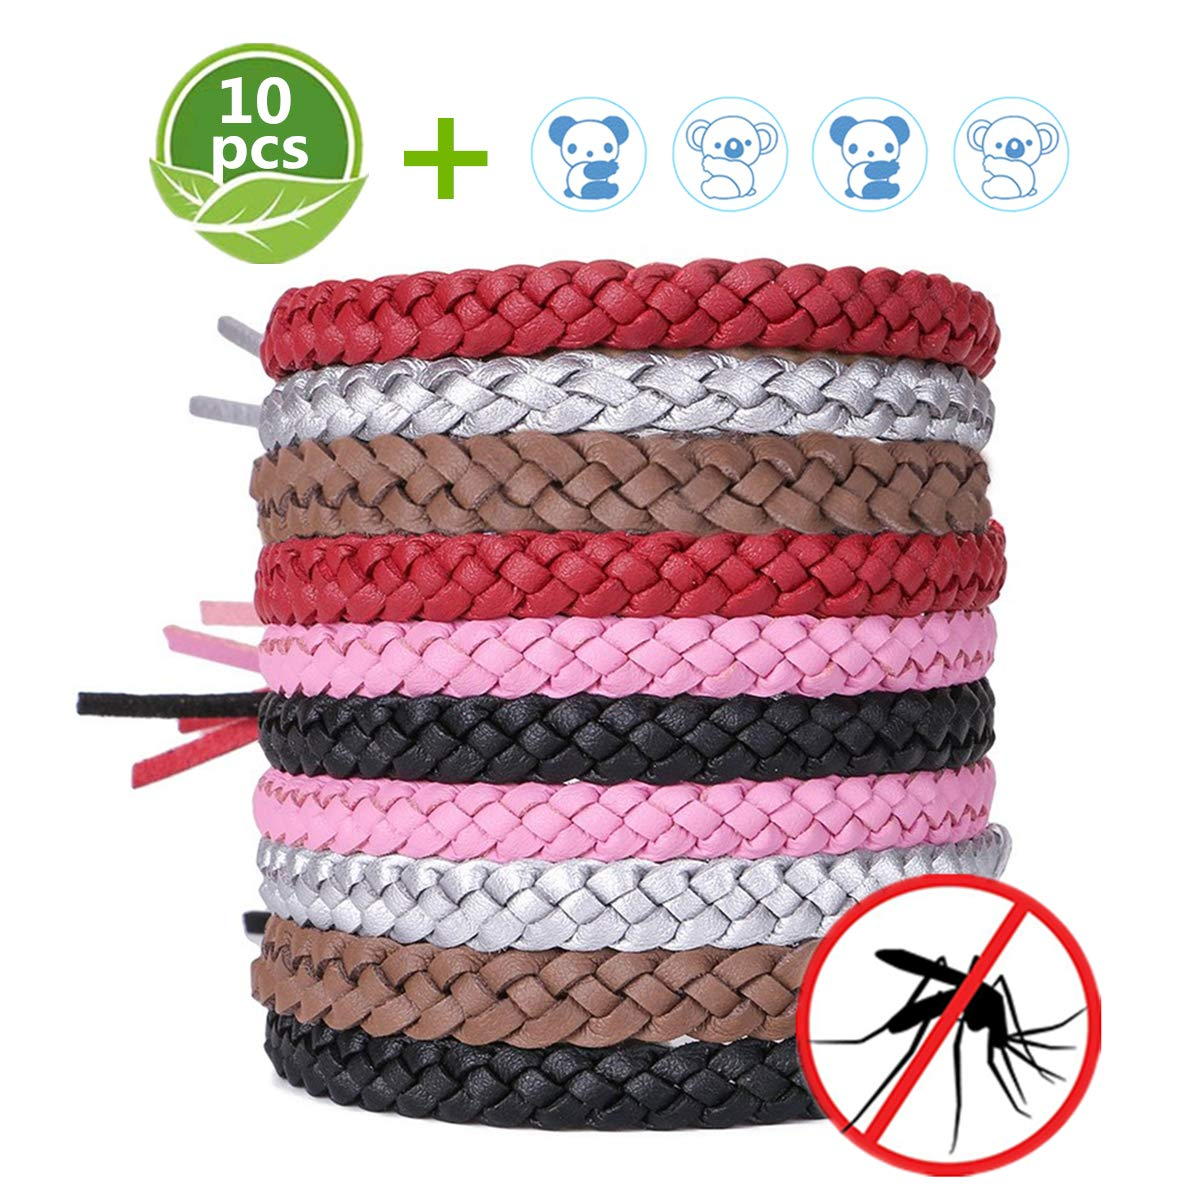 ACTOPP Mosquito Repellent Bracelet Wristbands for Kids and Adults 10 Pieces Repellent Bracelets with 12 Stickers Indoor and Outdoor Use 100/% Natural Waterproof Mosquito Wrist Bands